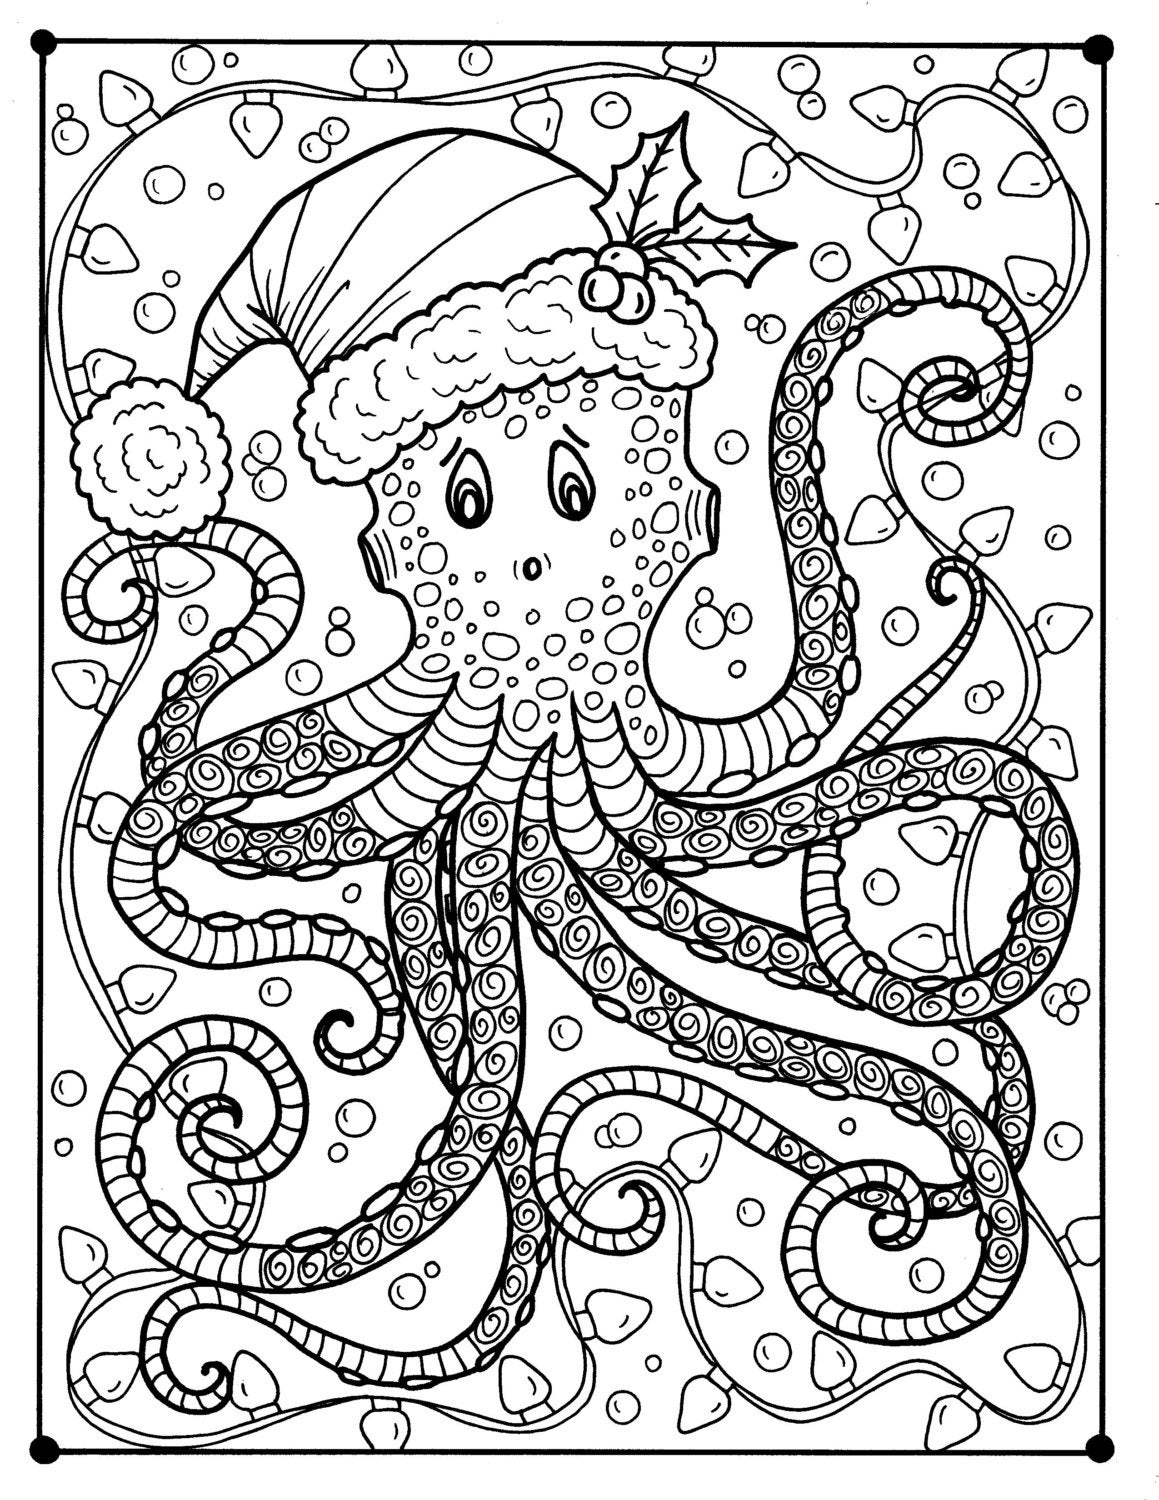 christmas coloring sheets for adults - Vatoz.atozdevelopment.co